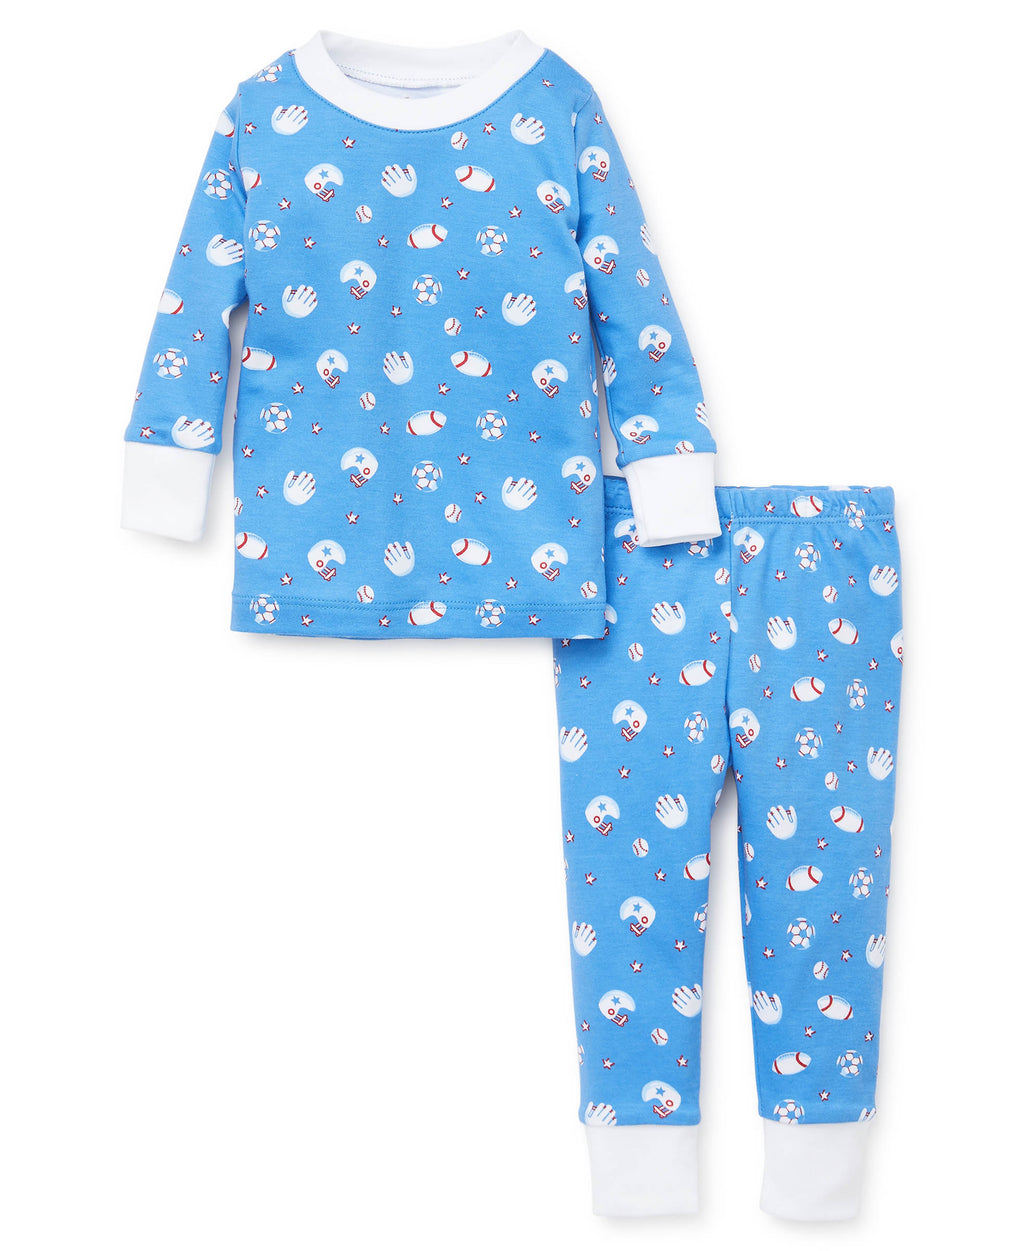 Fall Ball Toddler Pajama Set